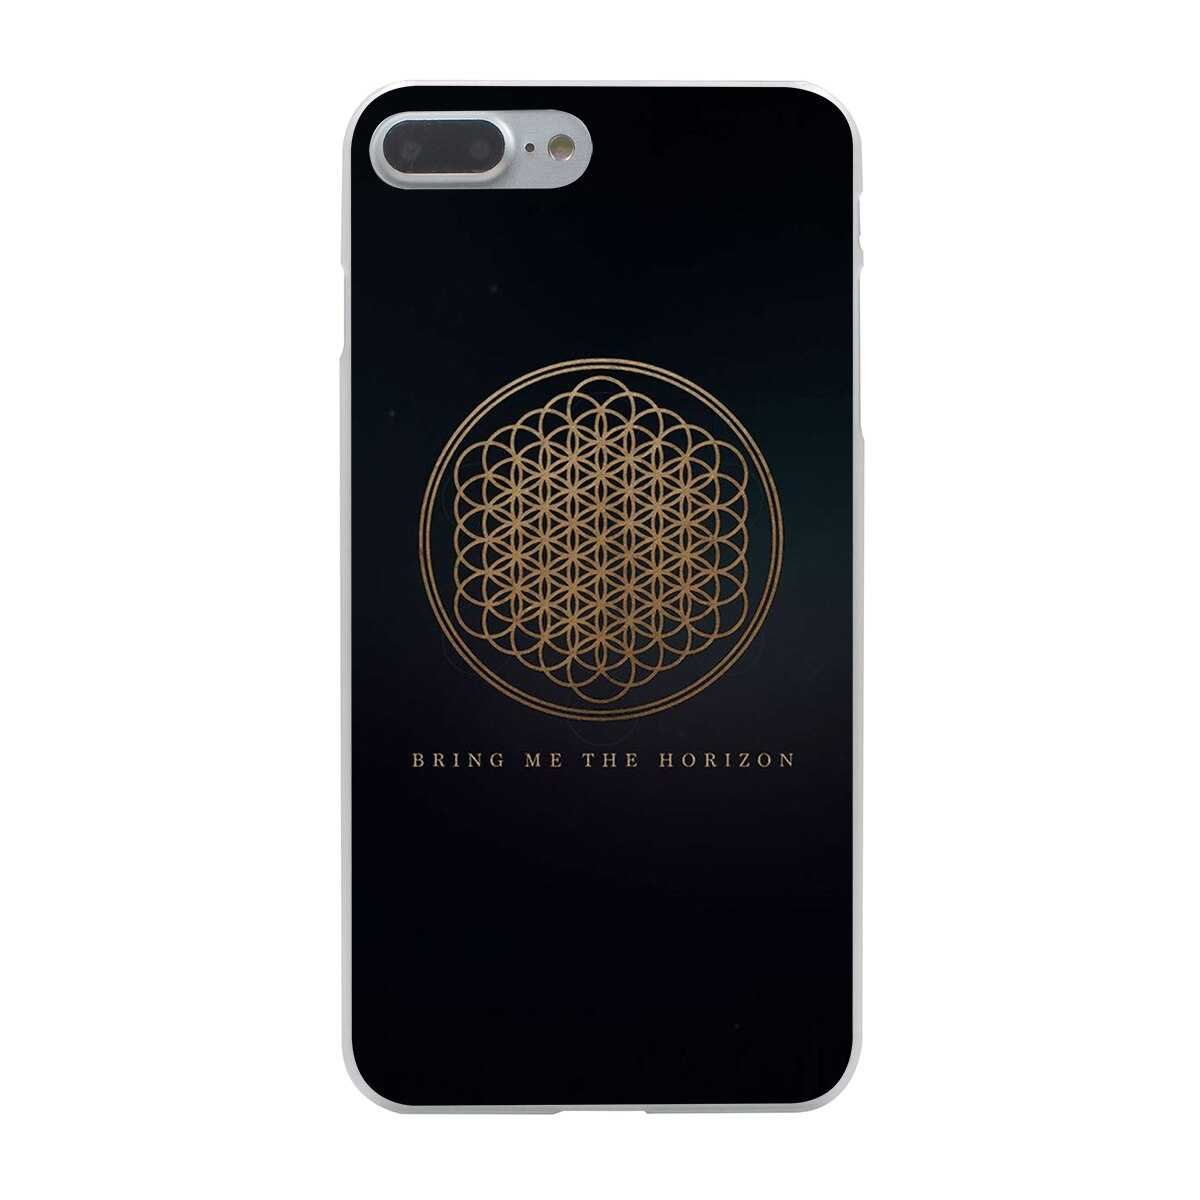 Bring Me the Horizon iPhone Case Color 123456789101112 24